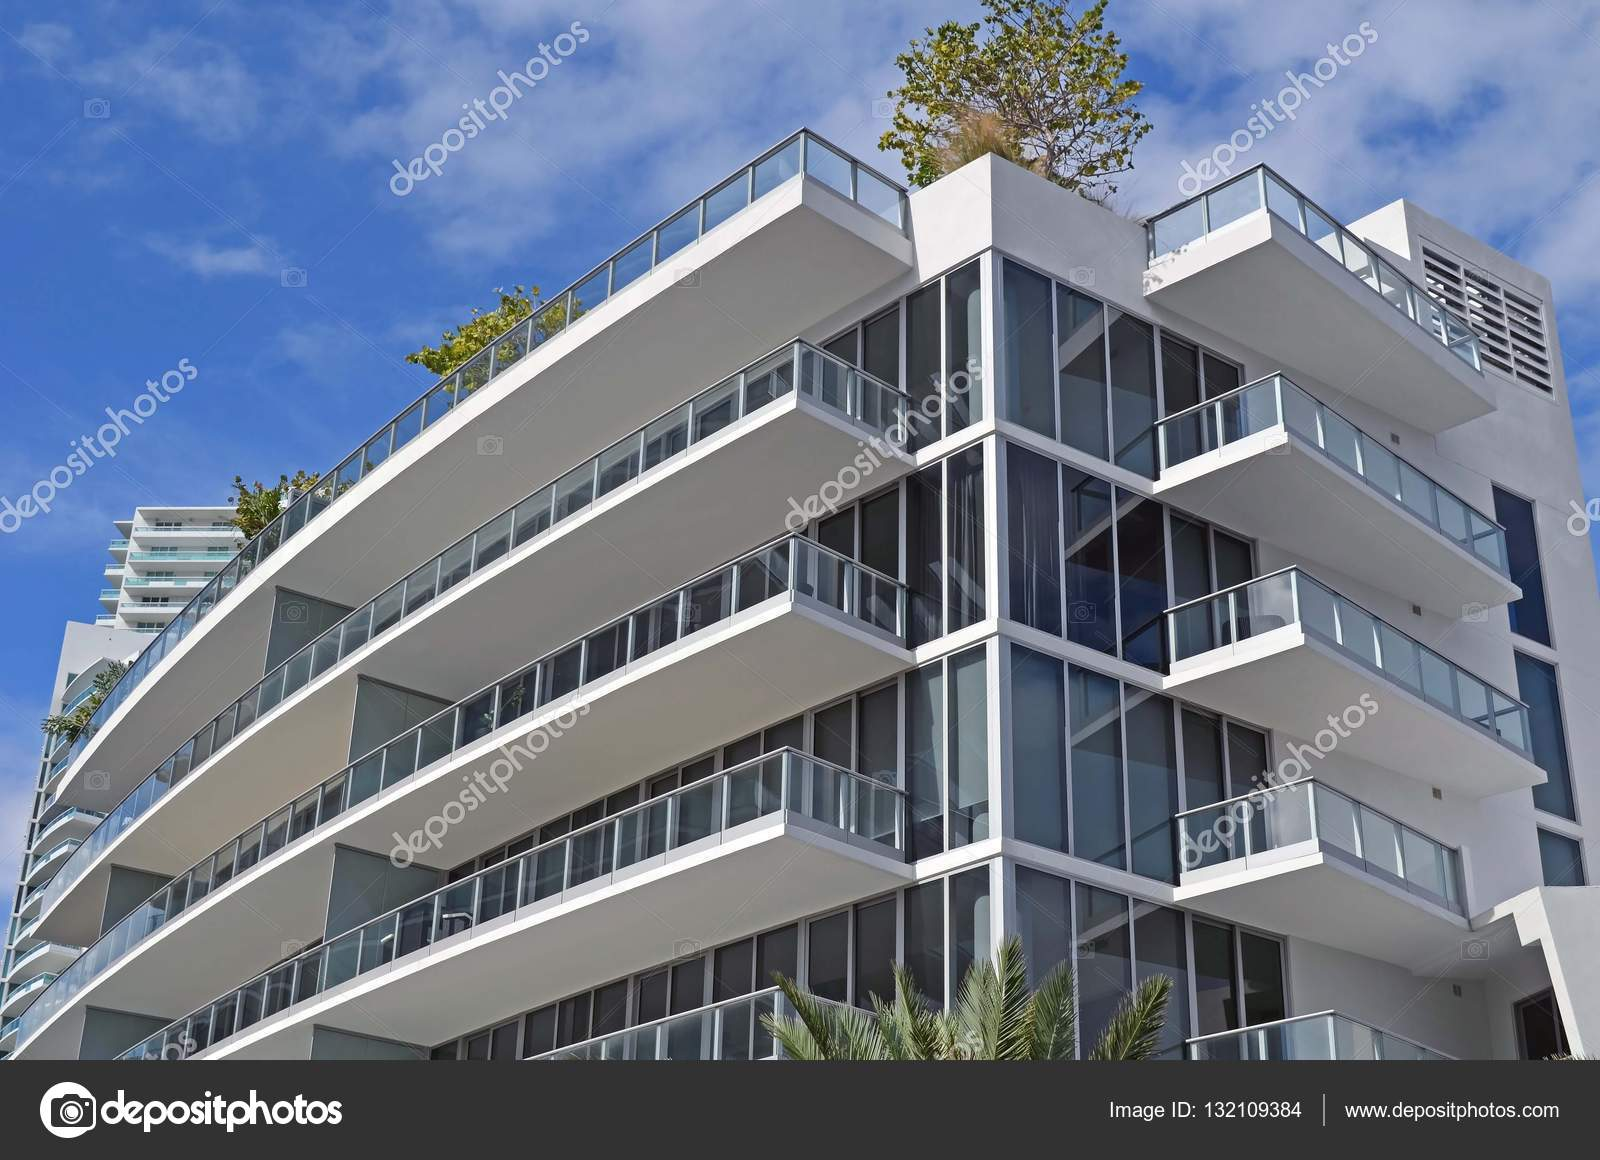 https://st3.depositphotos.com/1019399/13210/i/1600/depositphotos_132109384-stock-photo-exterior-of-a-modern-miami.jpg